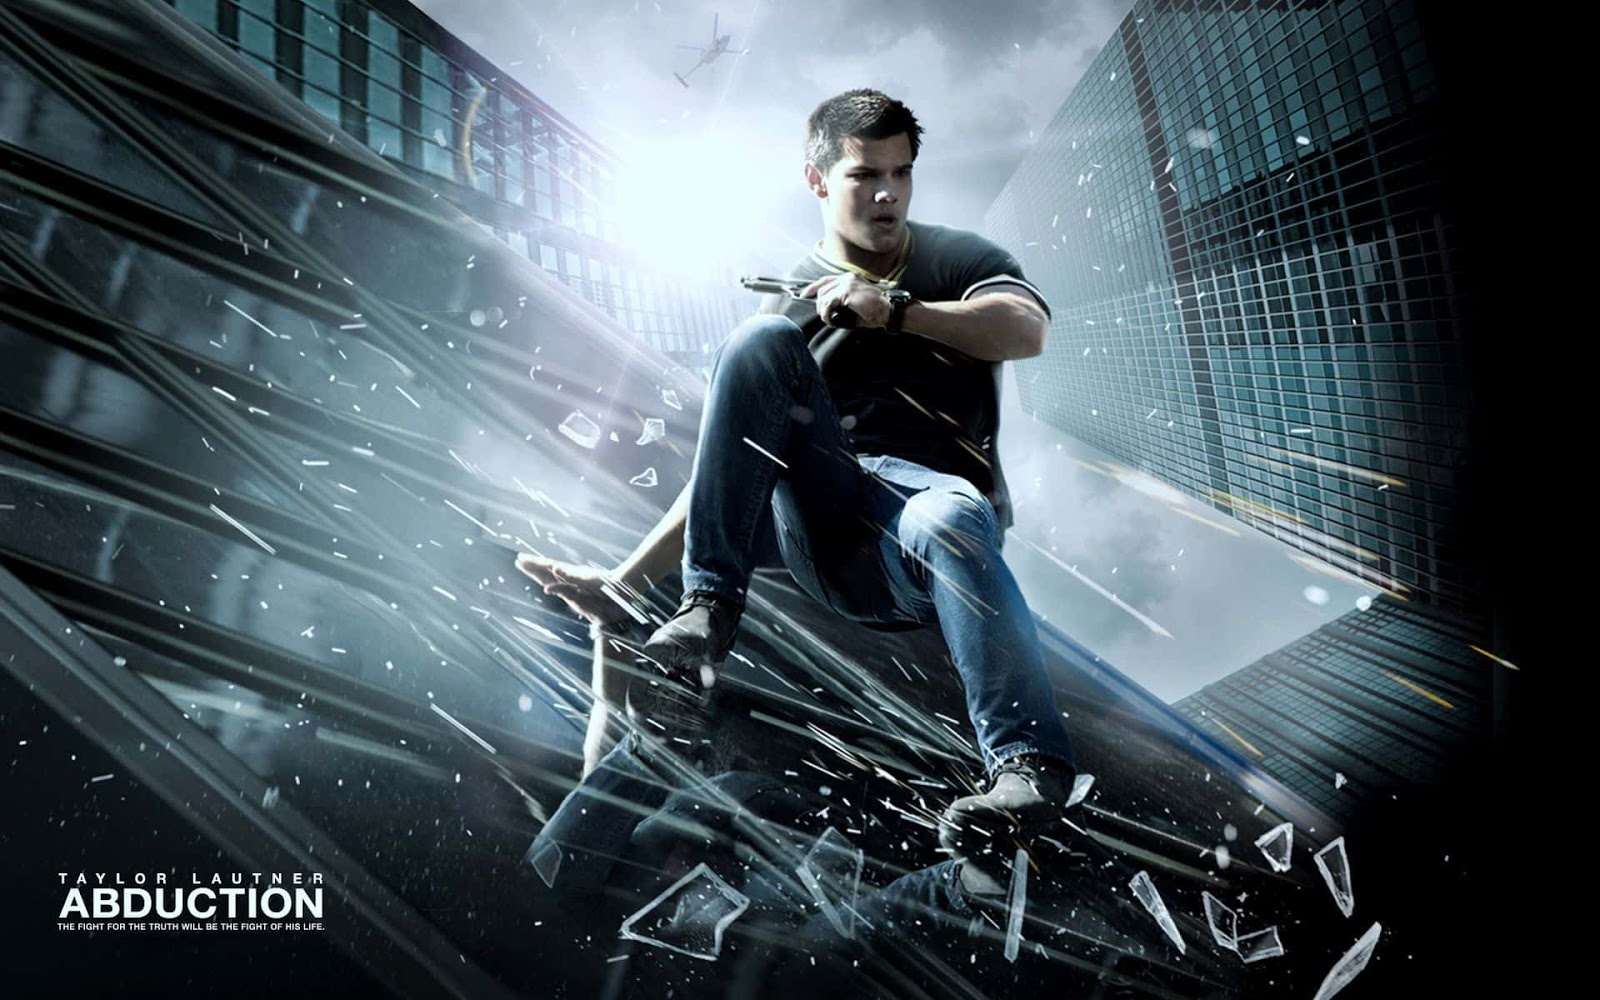 Abduction 2011 full movie download in hindi